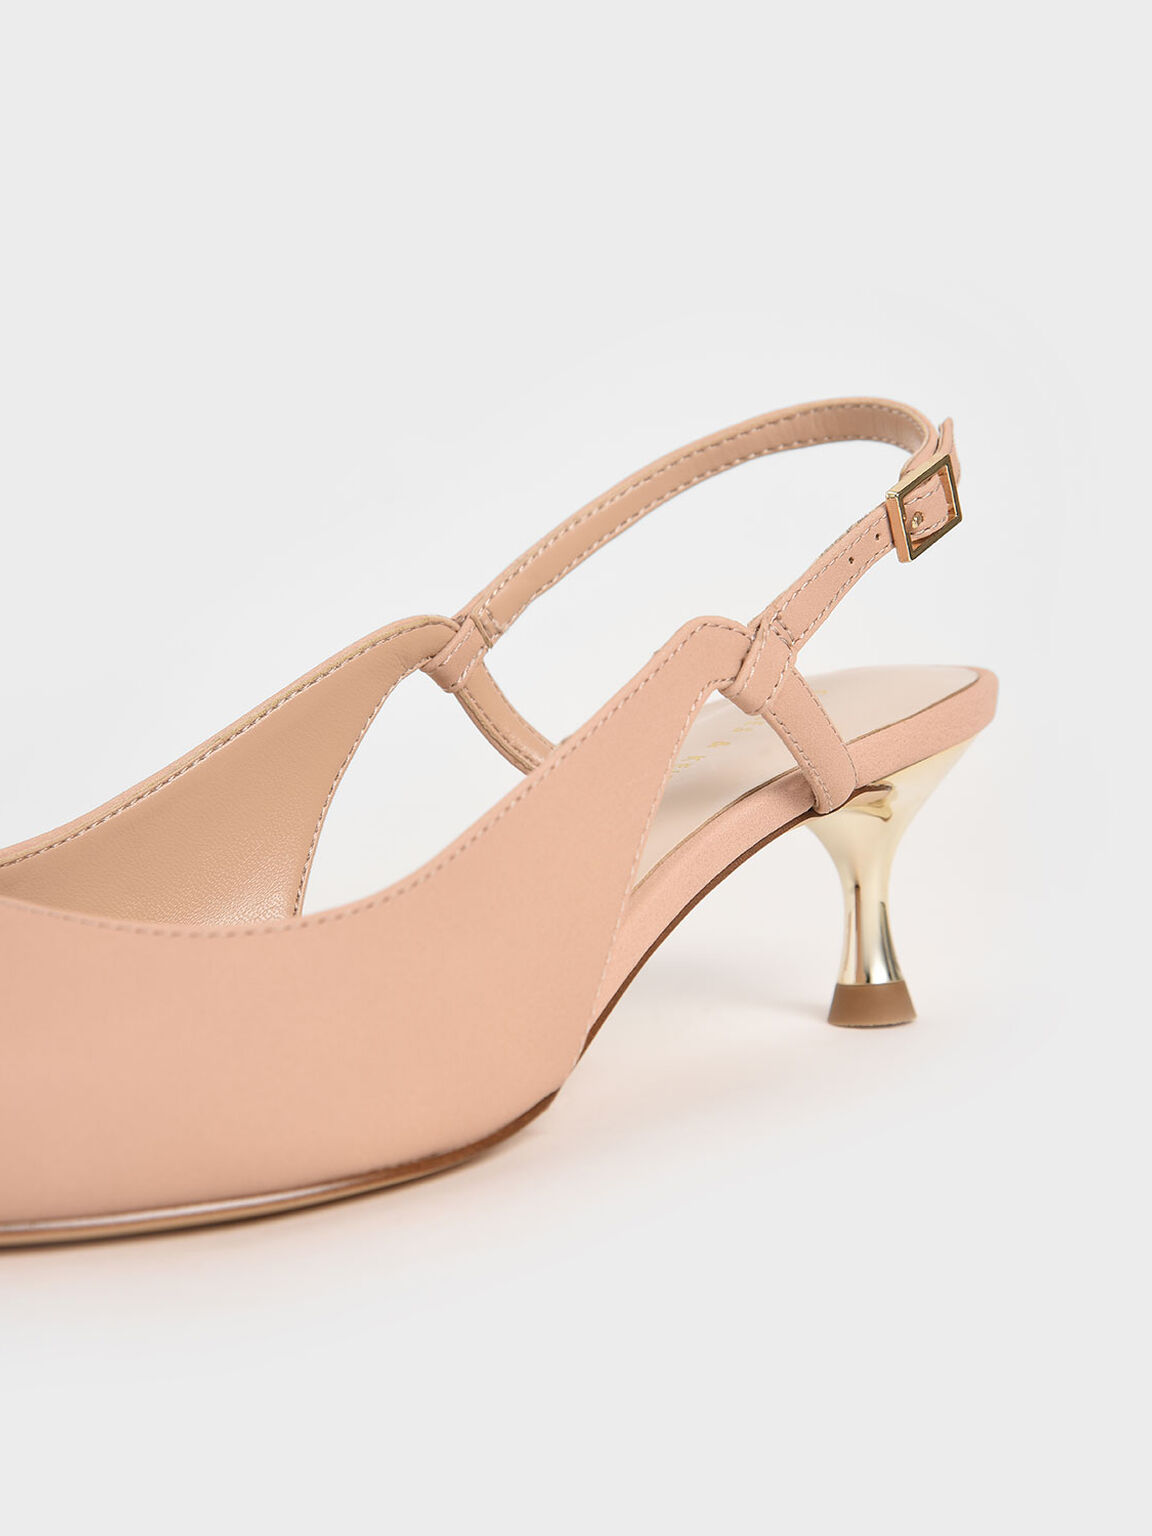 Cut-Out Slingback Kitten Heel Pumps, Nude, hi-res